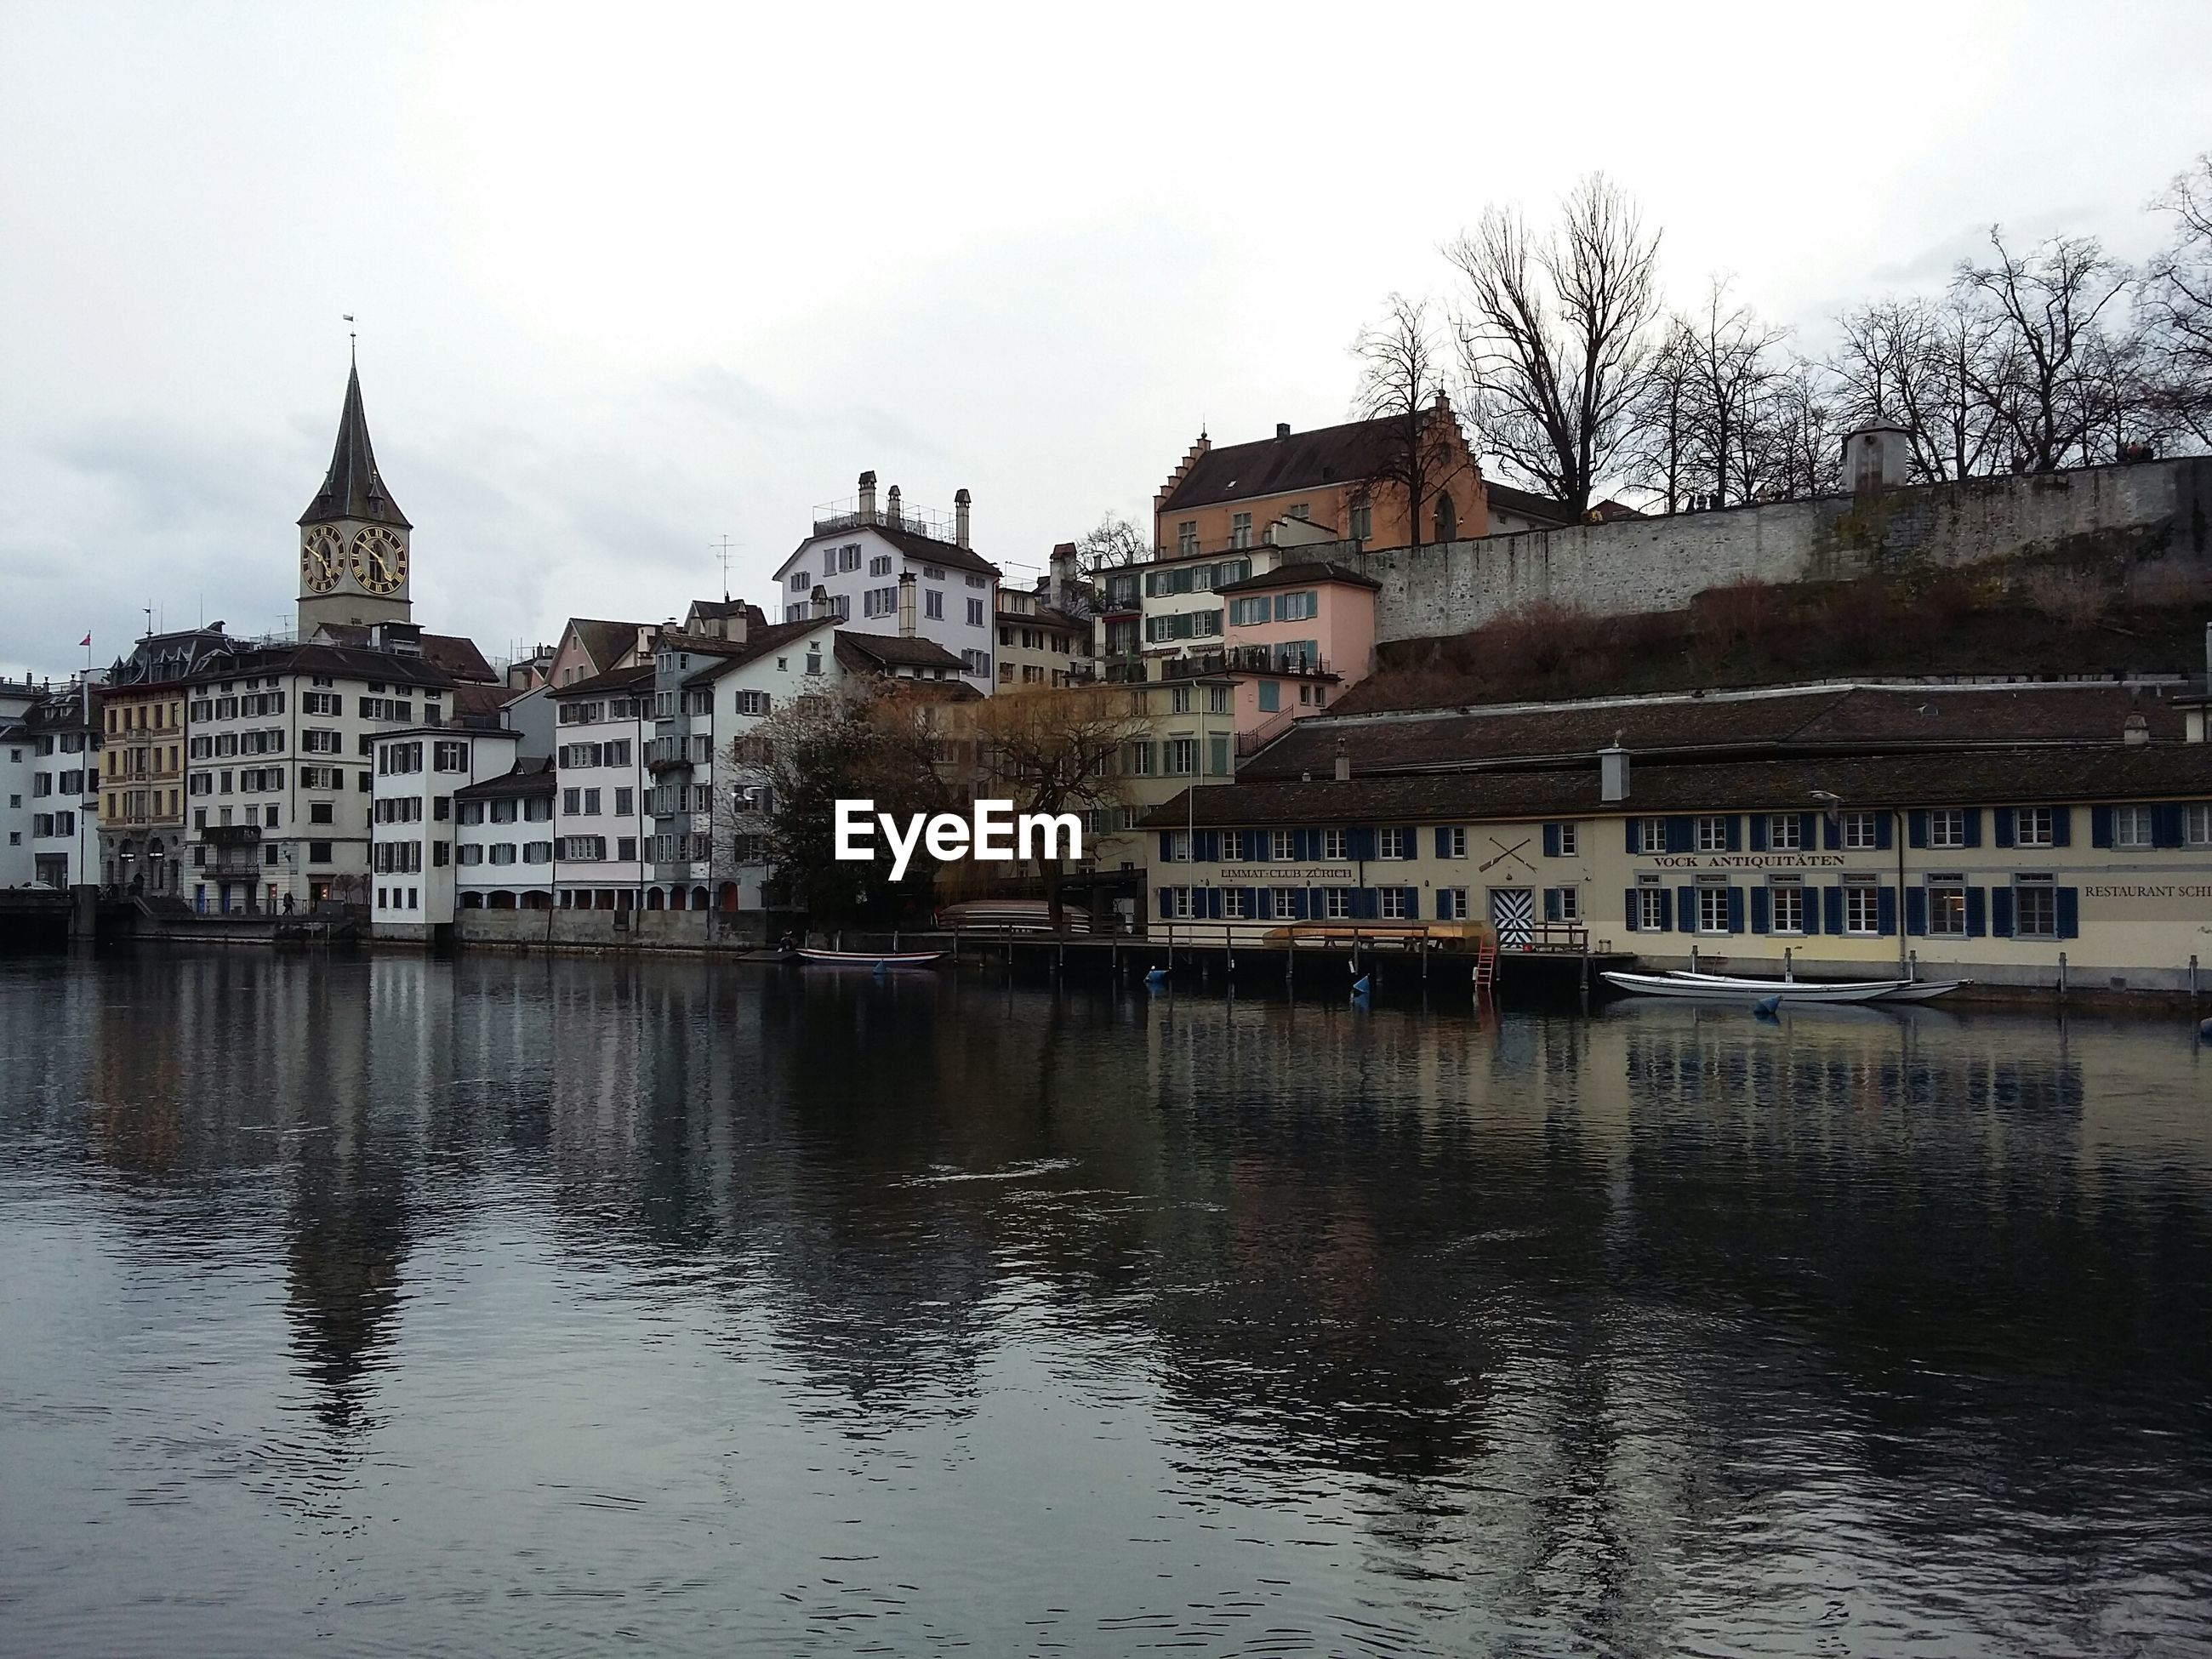 VIEW OF RIVER WITH BUILDINGS IN BACKGROUND